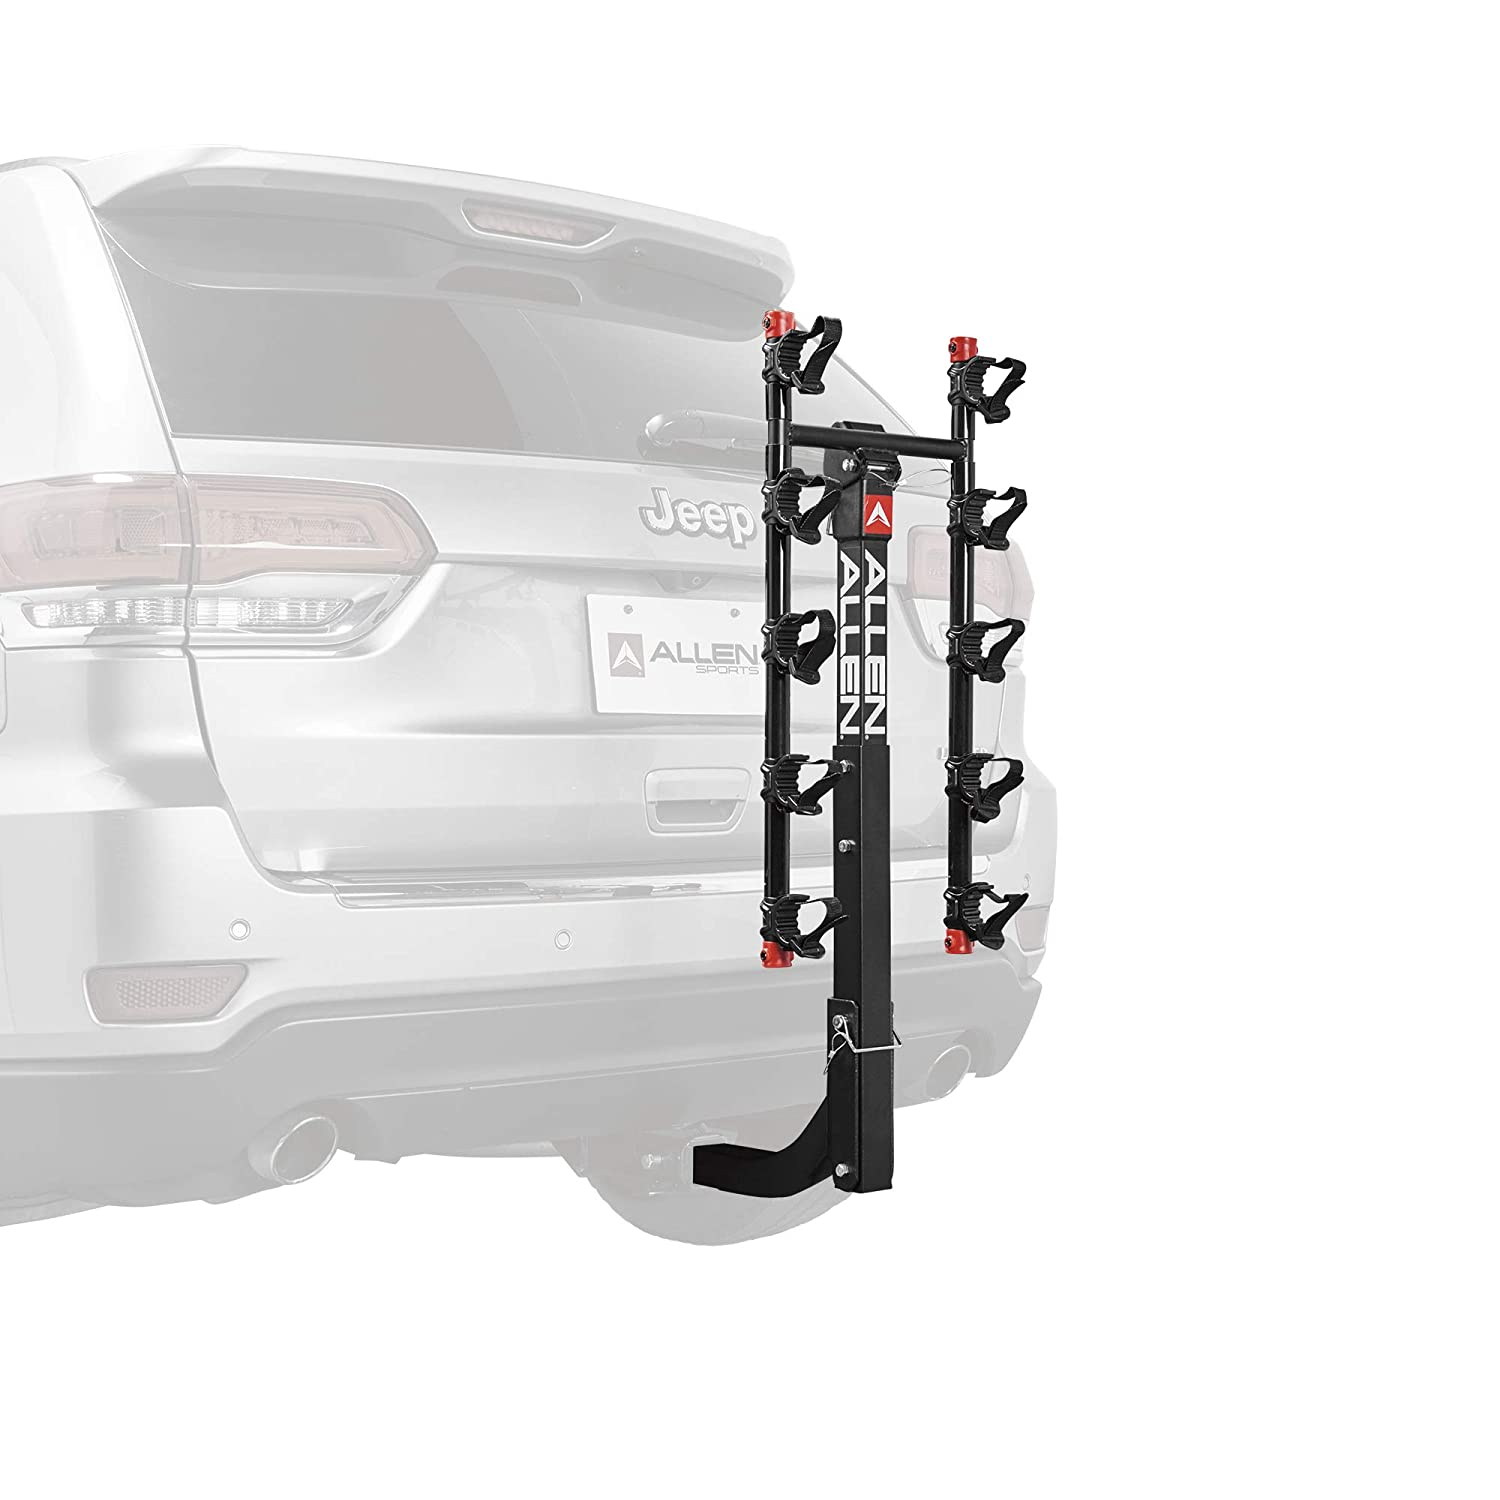 how much does it cost to install hitch on car